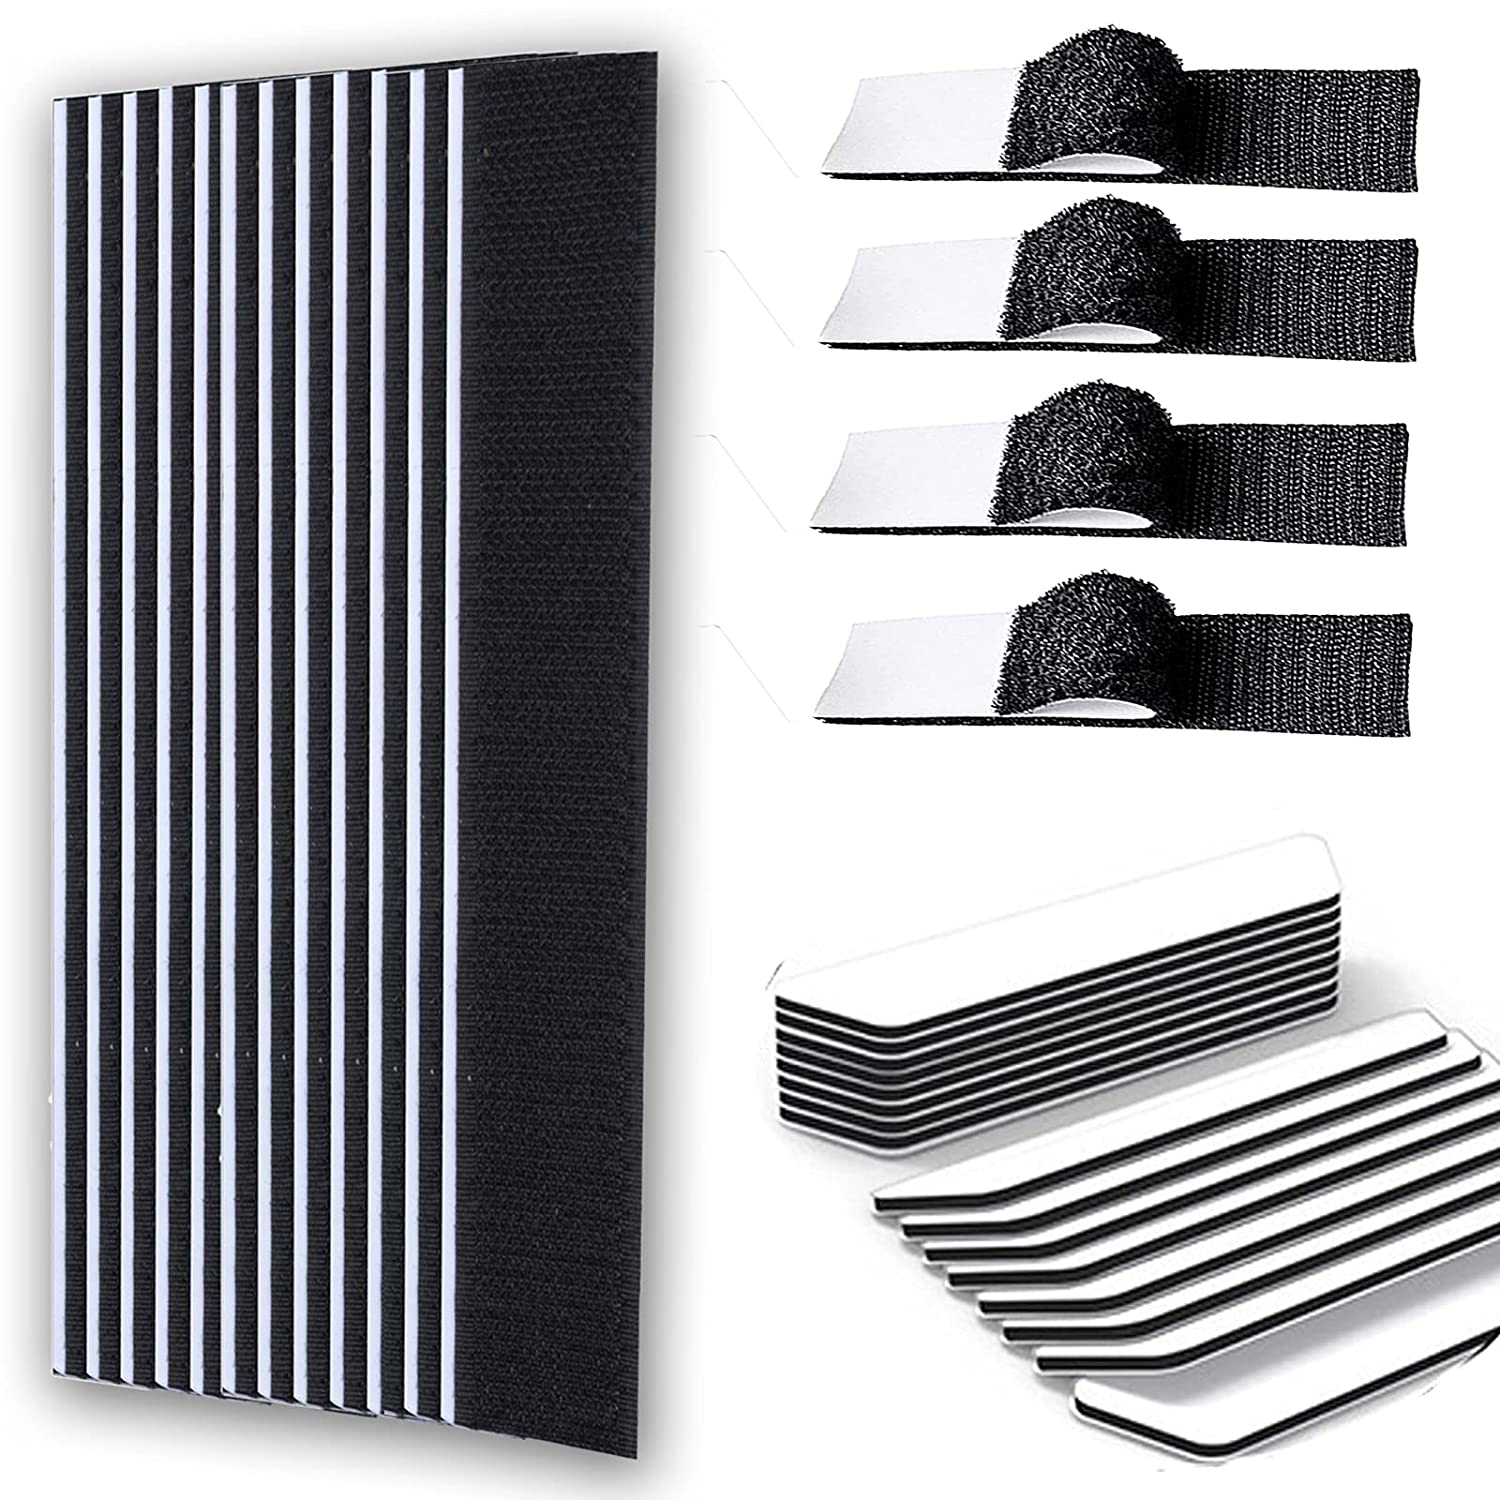 Couch Cushions, 15 Pairs Keep Couch Cushions from Sliding, Non Slip Self Adhesive Couch Cushions Keep Hook Loop Tapes Strips with Adhesive from Sliding, Double Sided Non Slip Furniture Pads(1x7 Inch)